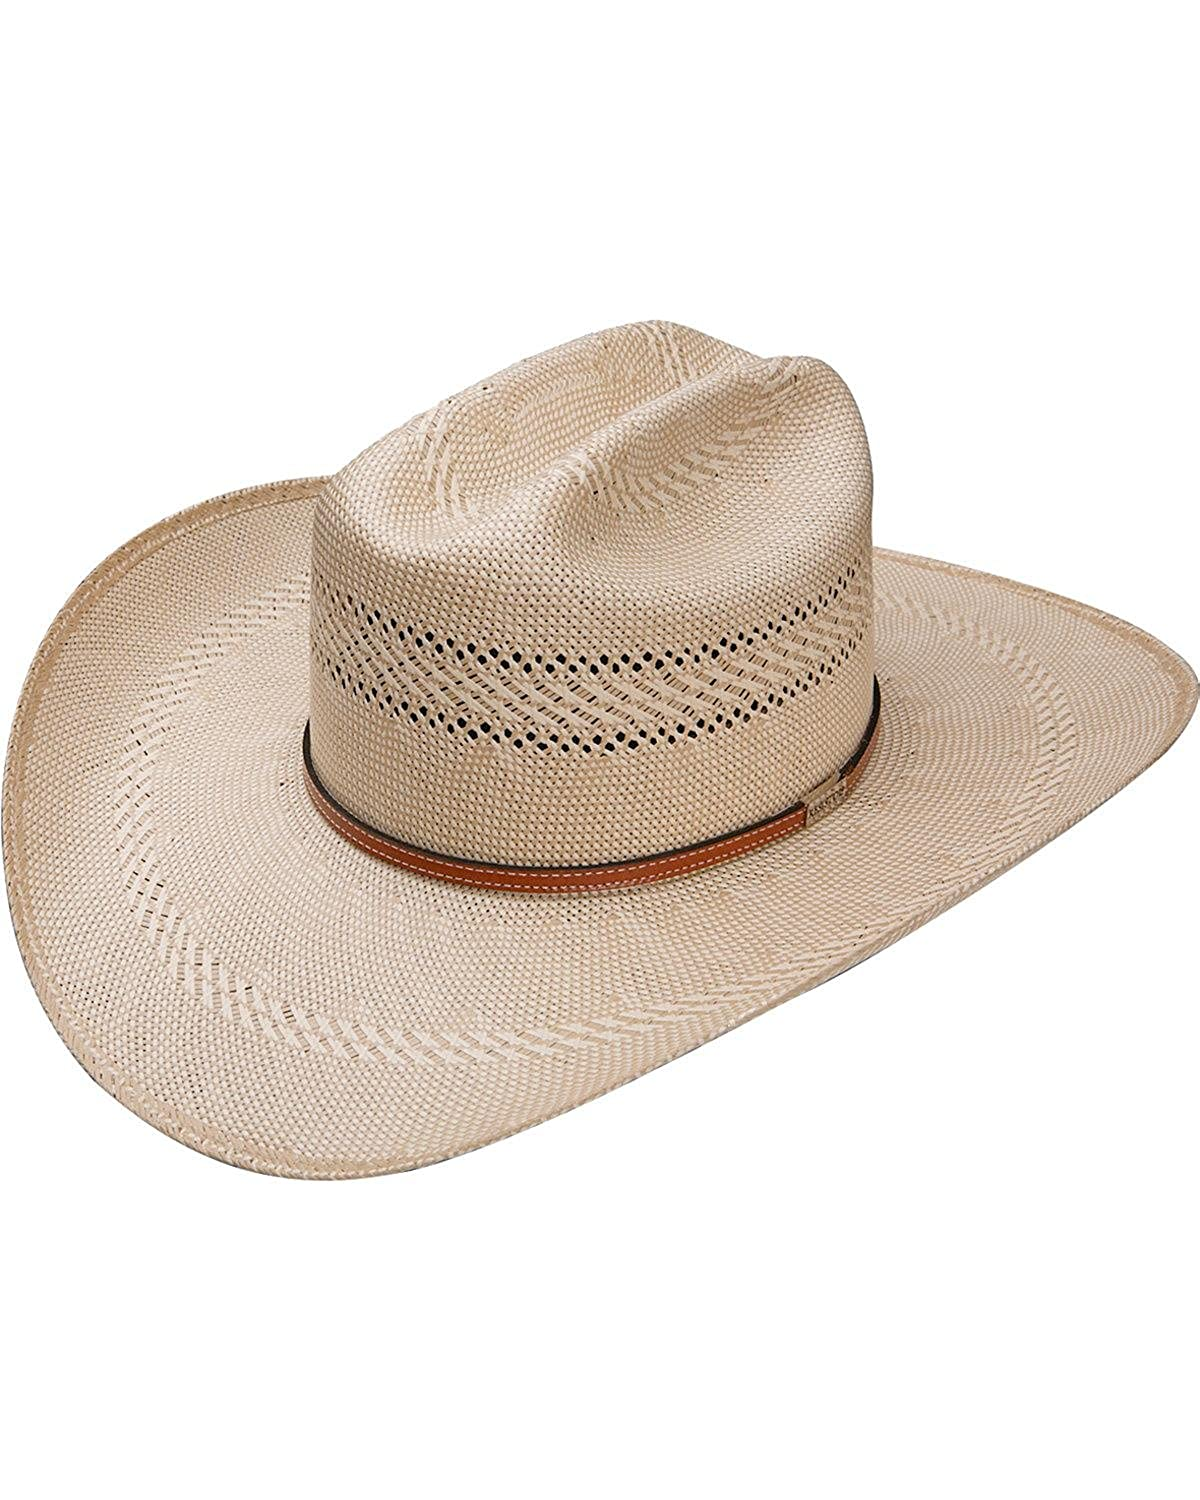 Resistol Men s Natural 50X Open Range Panama Straw Hat - Rsoprg-3042 at  Amazon Men s Clothing store  93a74286f06